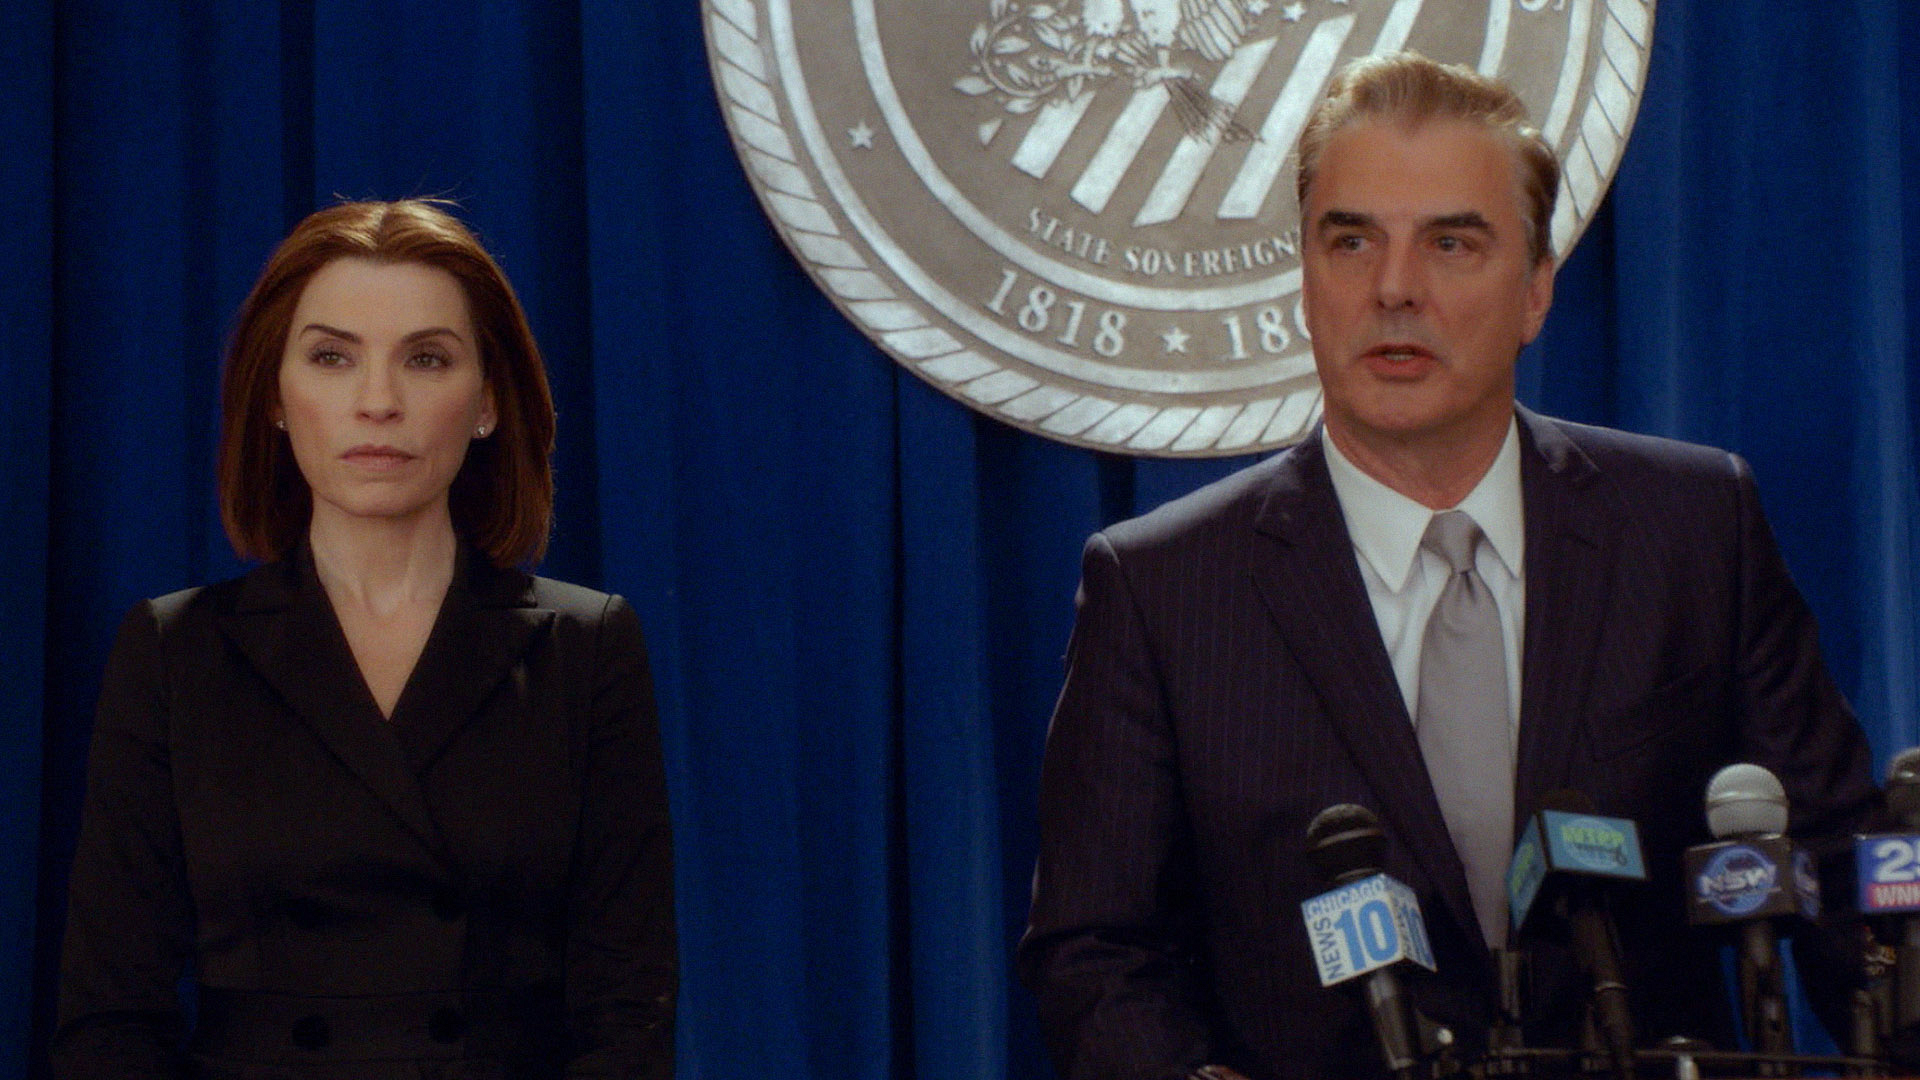 Alicia Florrick stood by Peter's side one final time on The Good Wife.